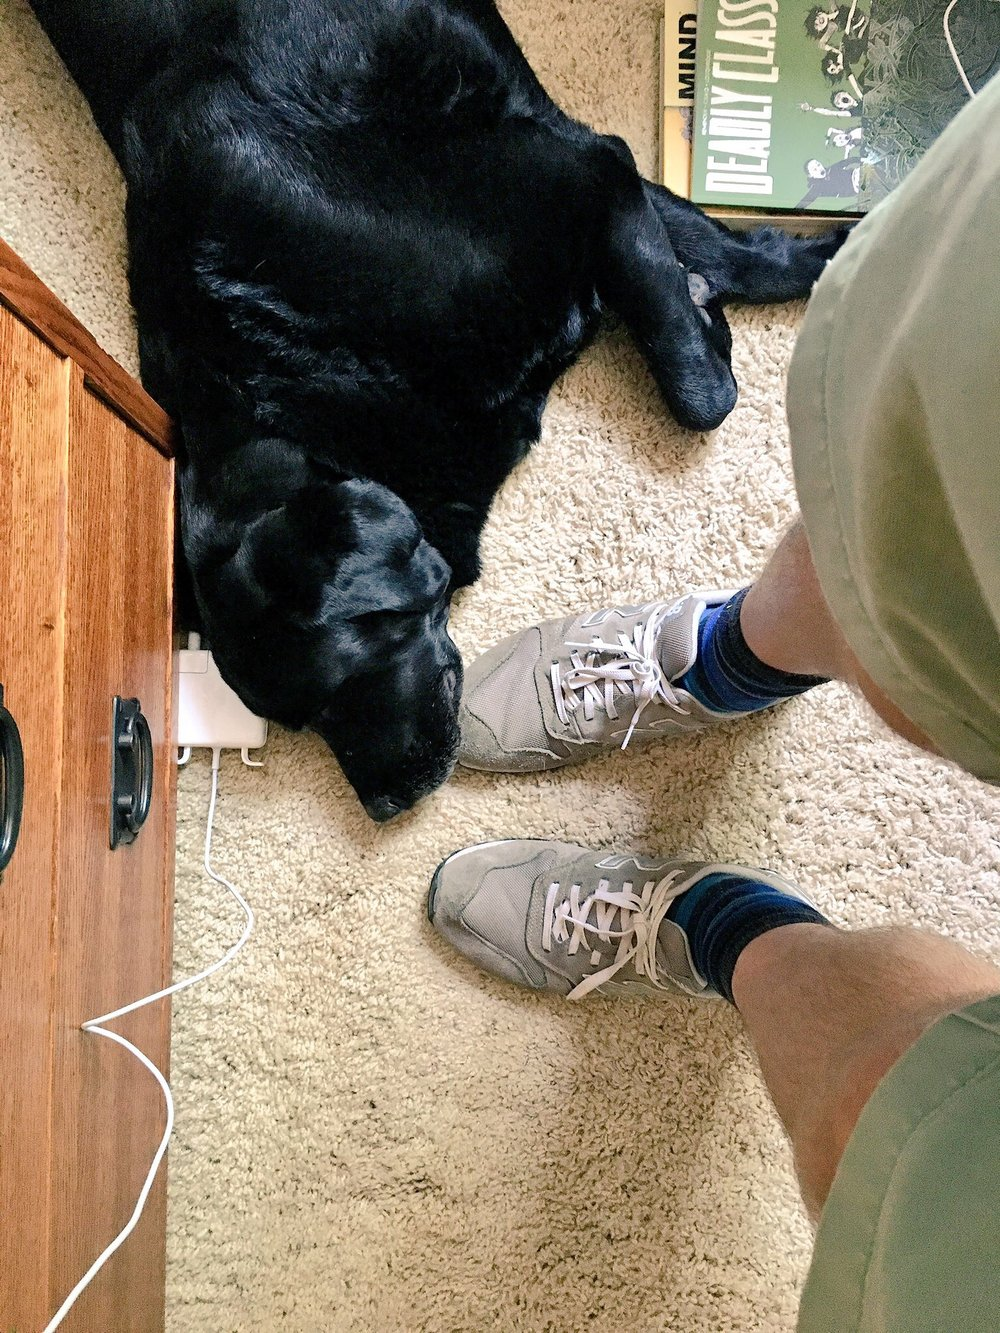 At Winning Edits, we like to work with animals at our feet (even if that means suffering from Dog Fart).